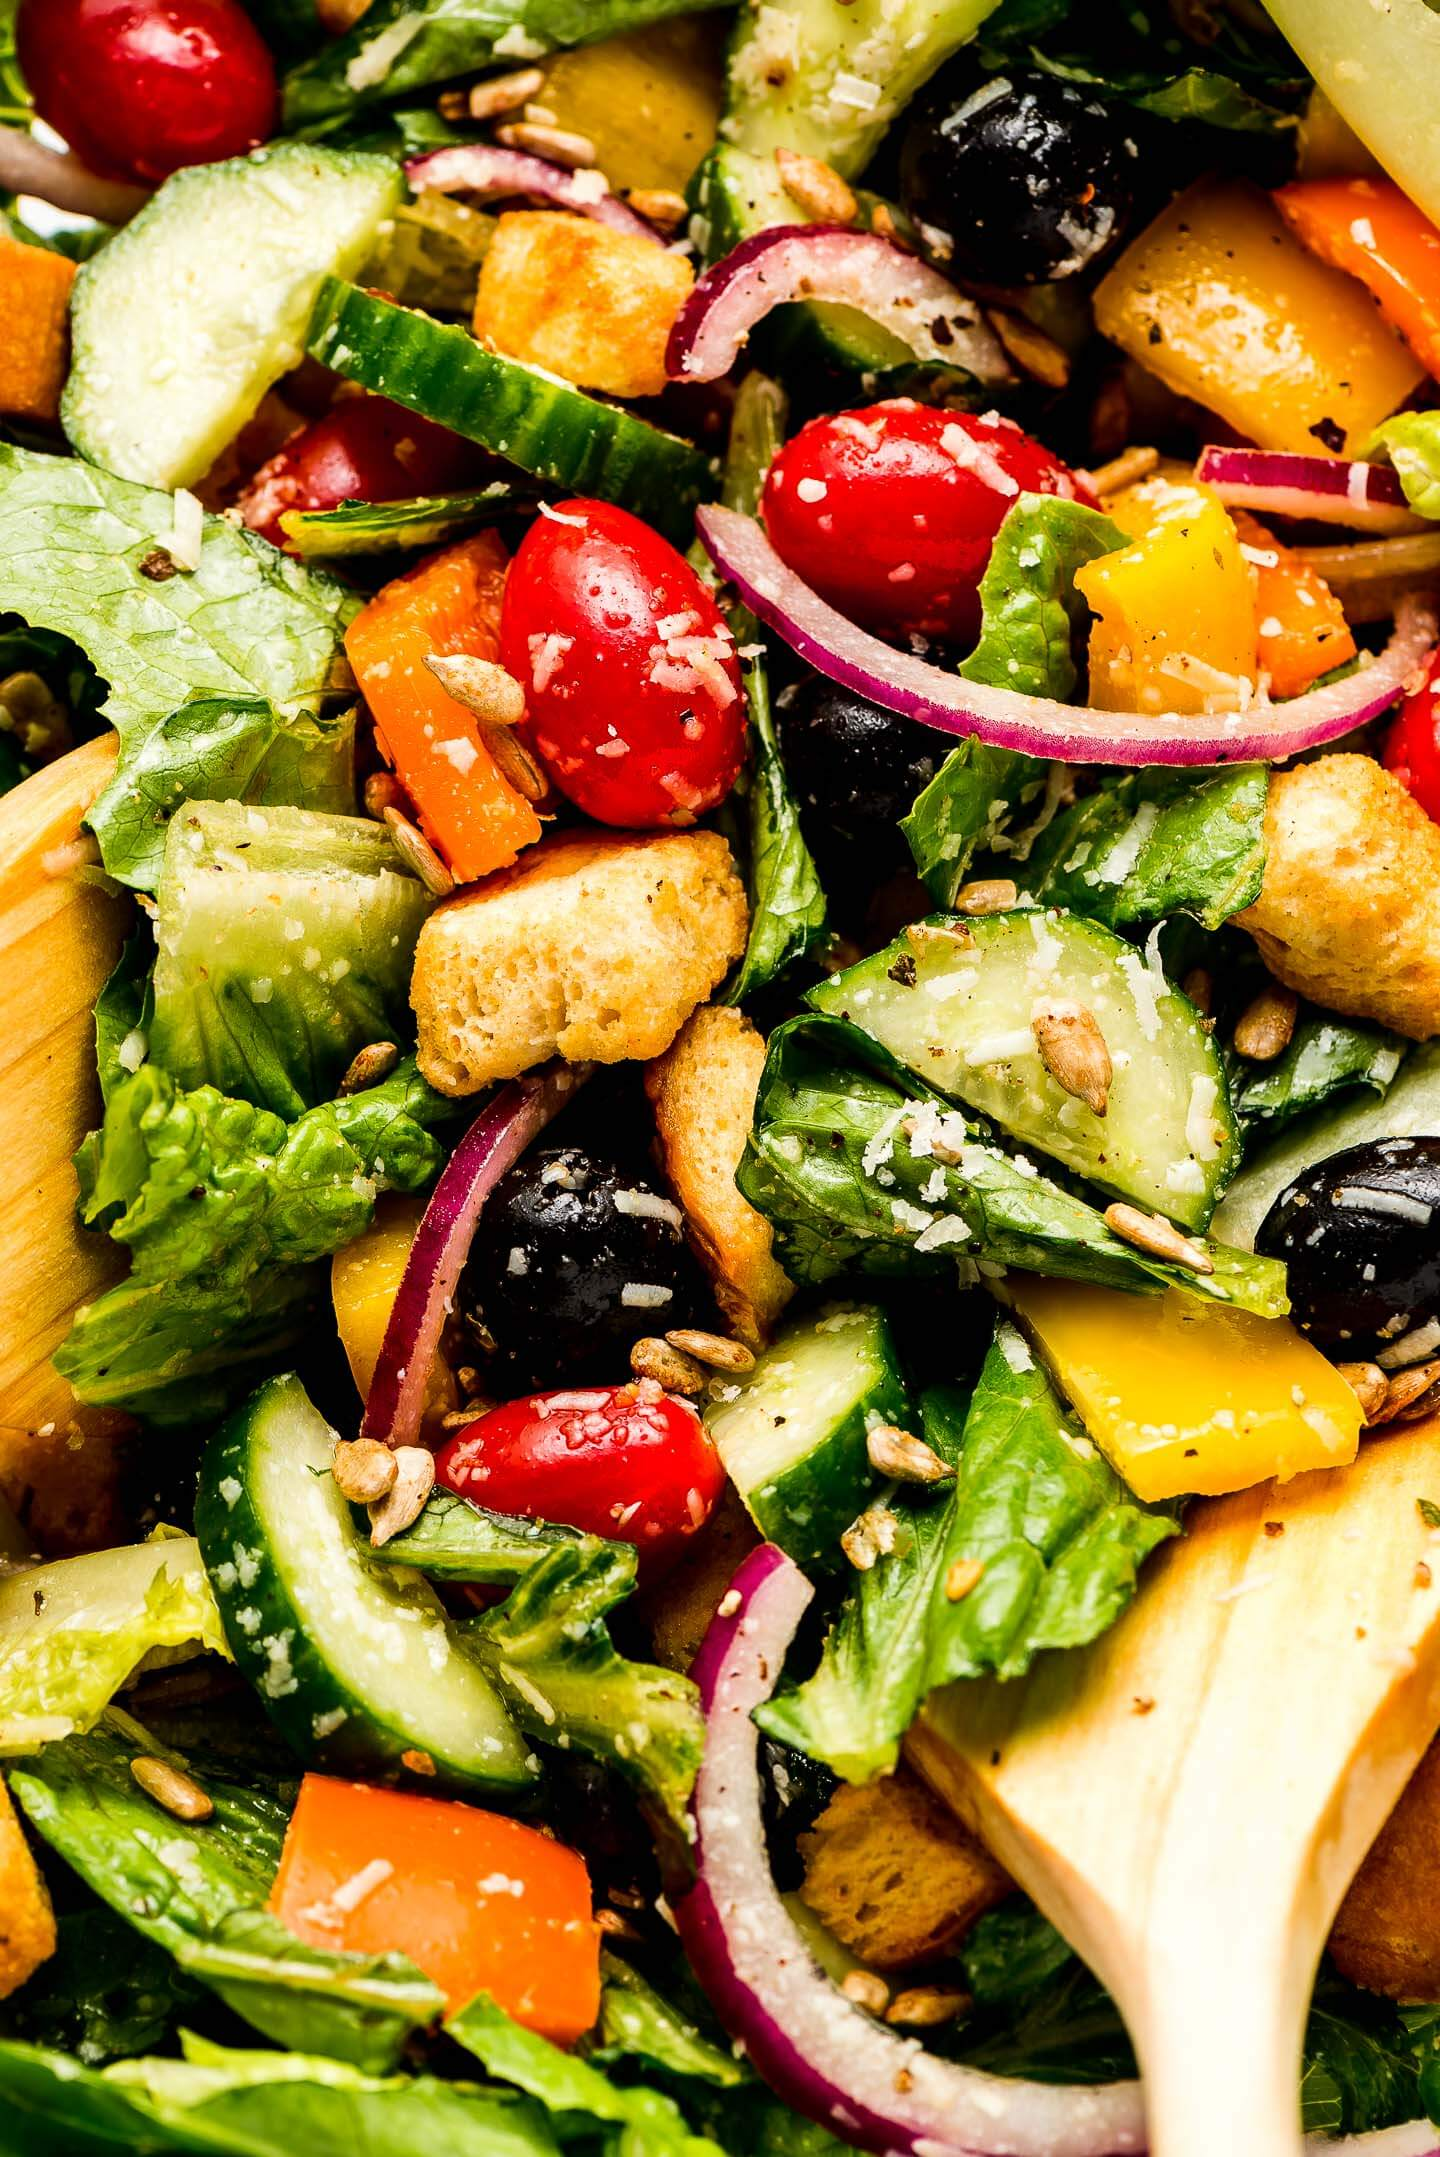 Close up shot of a tossed side salad with romaine lettuce, cucumbers, grape tomatoes, bell peppers, olives, red onion, sunflower seeds, and parmesan cheese.